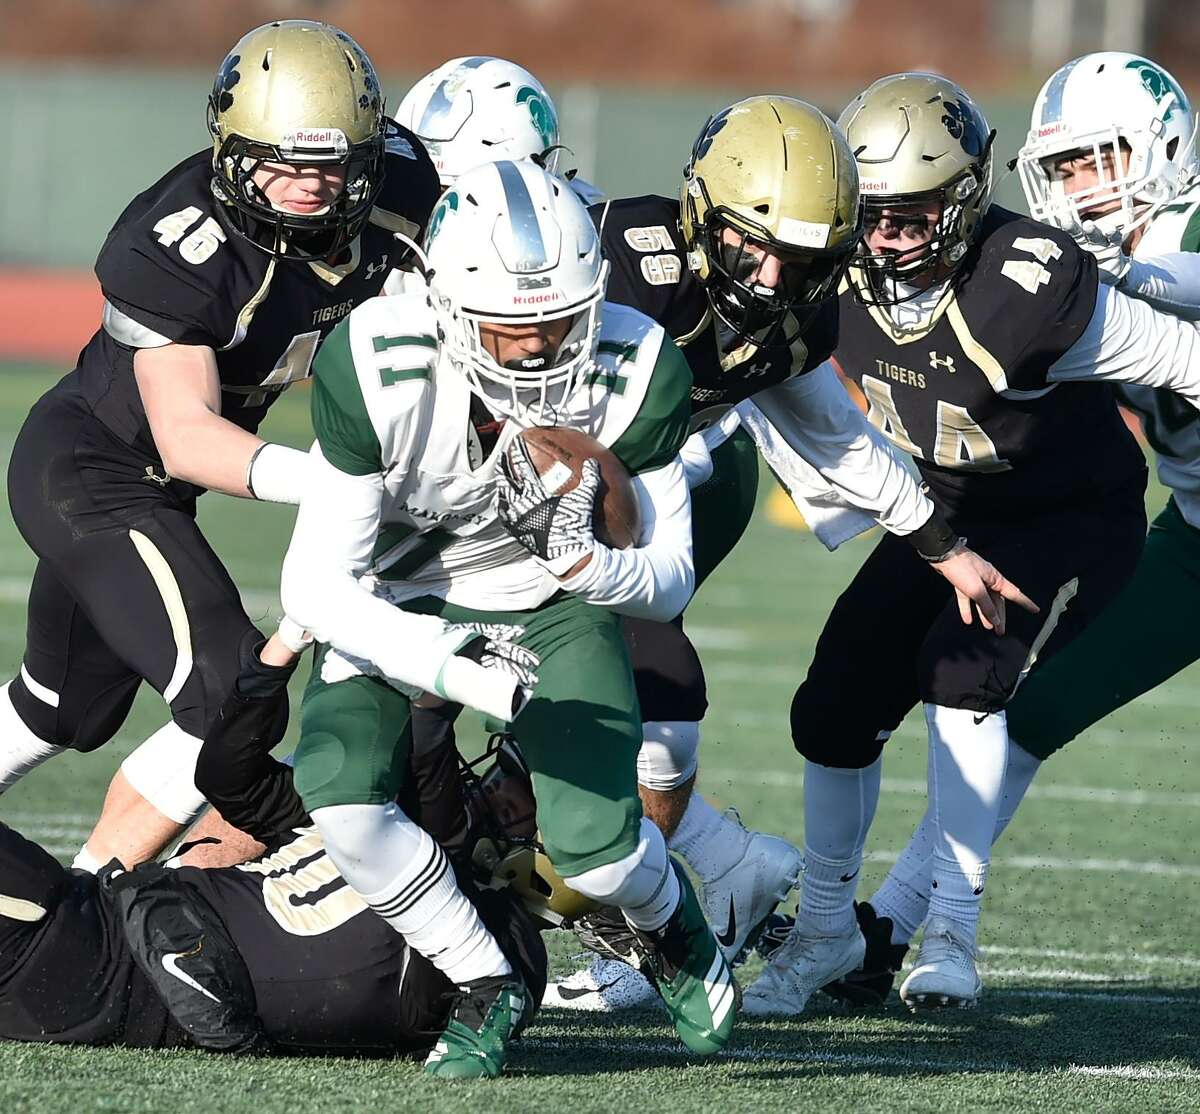 New Britain, Connecticut - Saturday, December 8, 2018: Daniel Hand H.S. vs. Maloney H.S. during first half football of the CIAC Class L Championship Game Saturday afternoon at Willowbrook Park Stadium in New Britain.